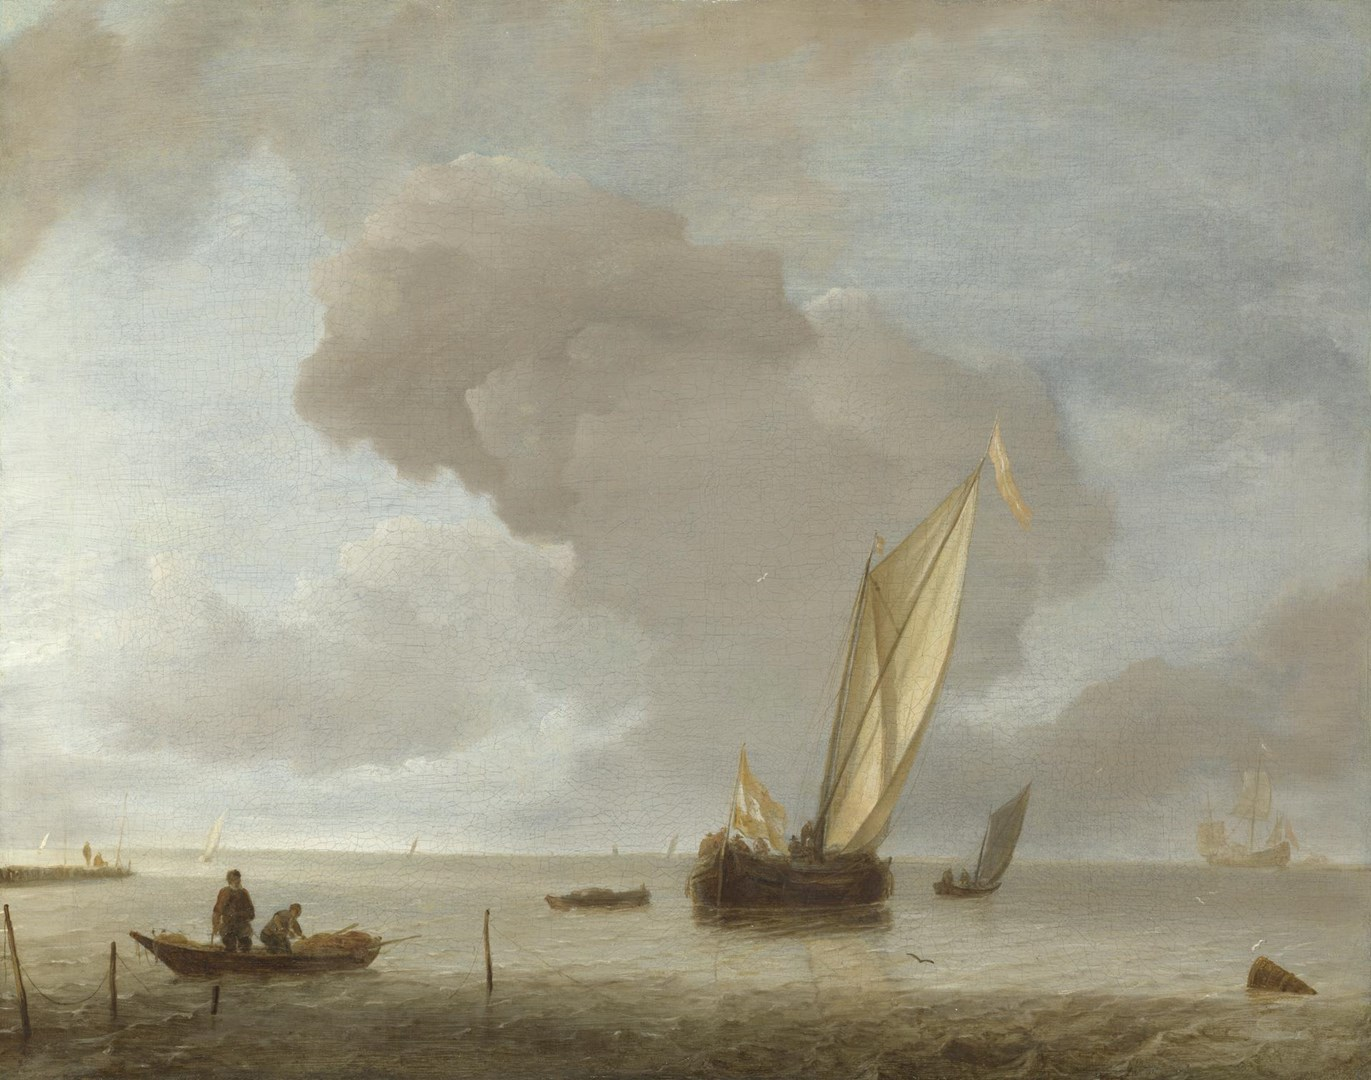 A Small Dutch Vessel before a Light Breeze by Jan van de Cappelle